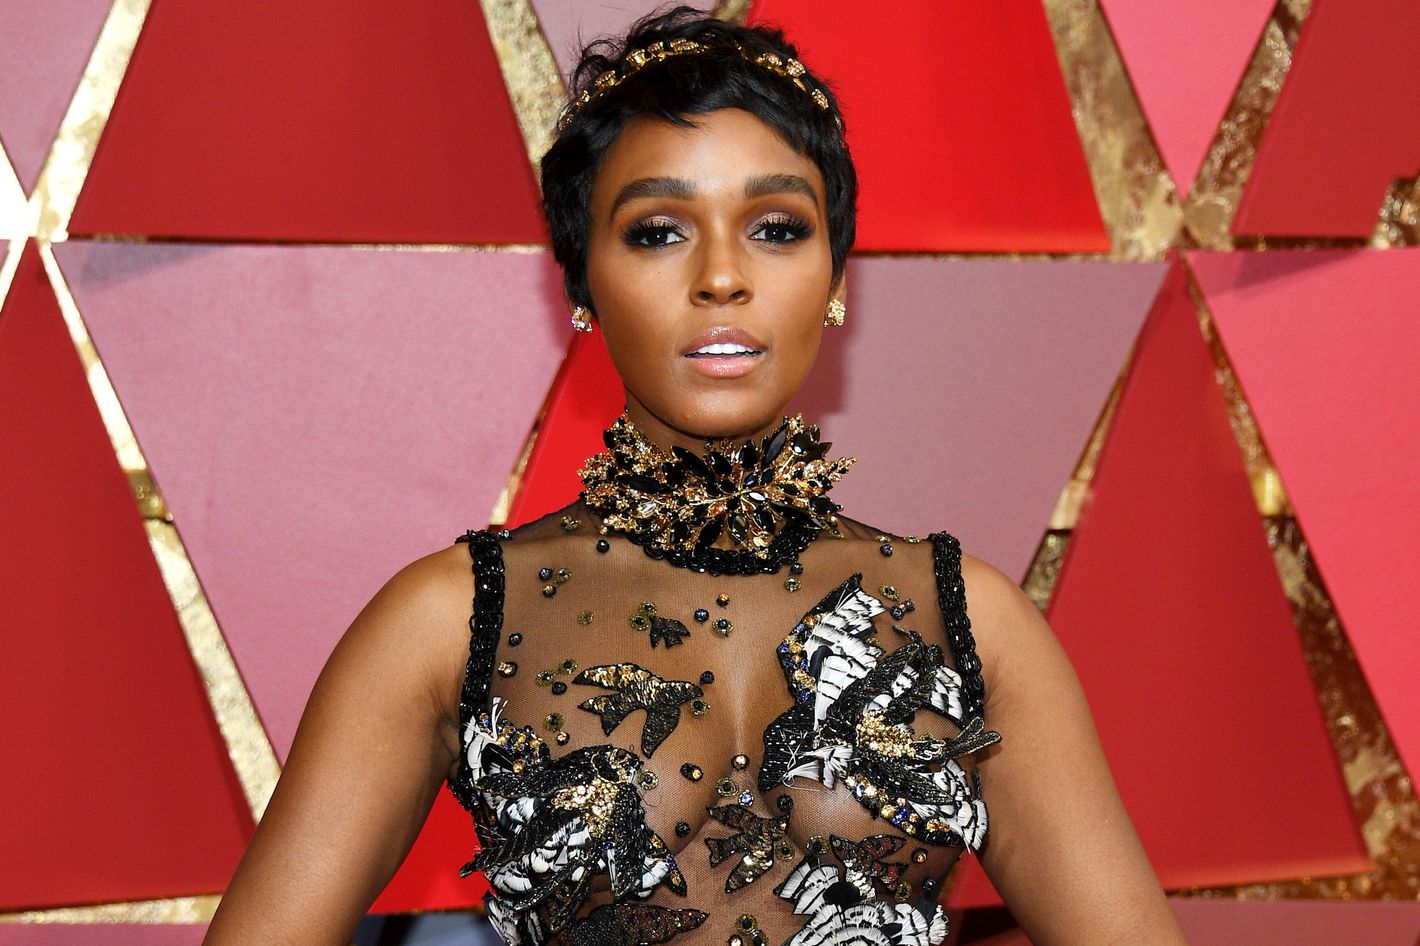 Monae janelle how i spend my downtime recommend dress for on every day in 2019